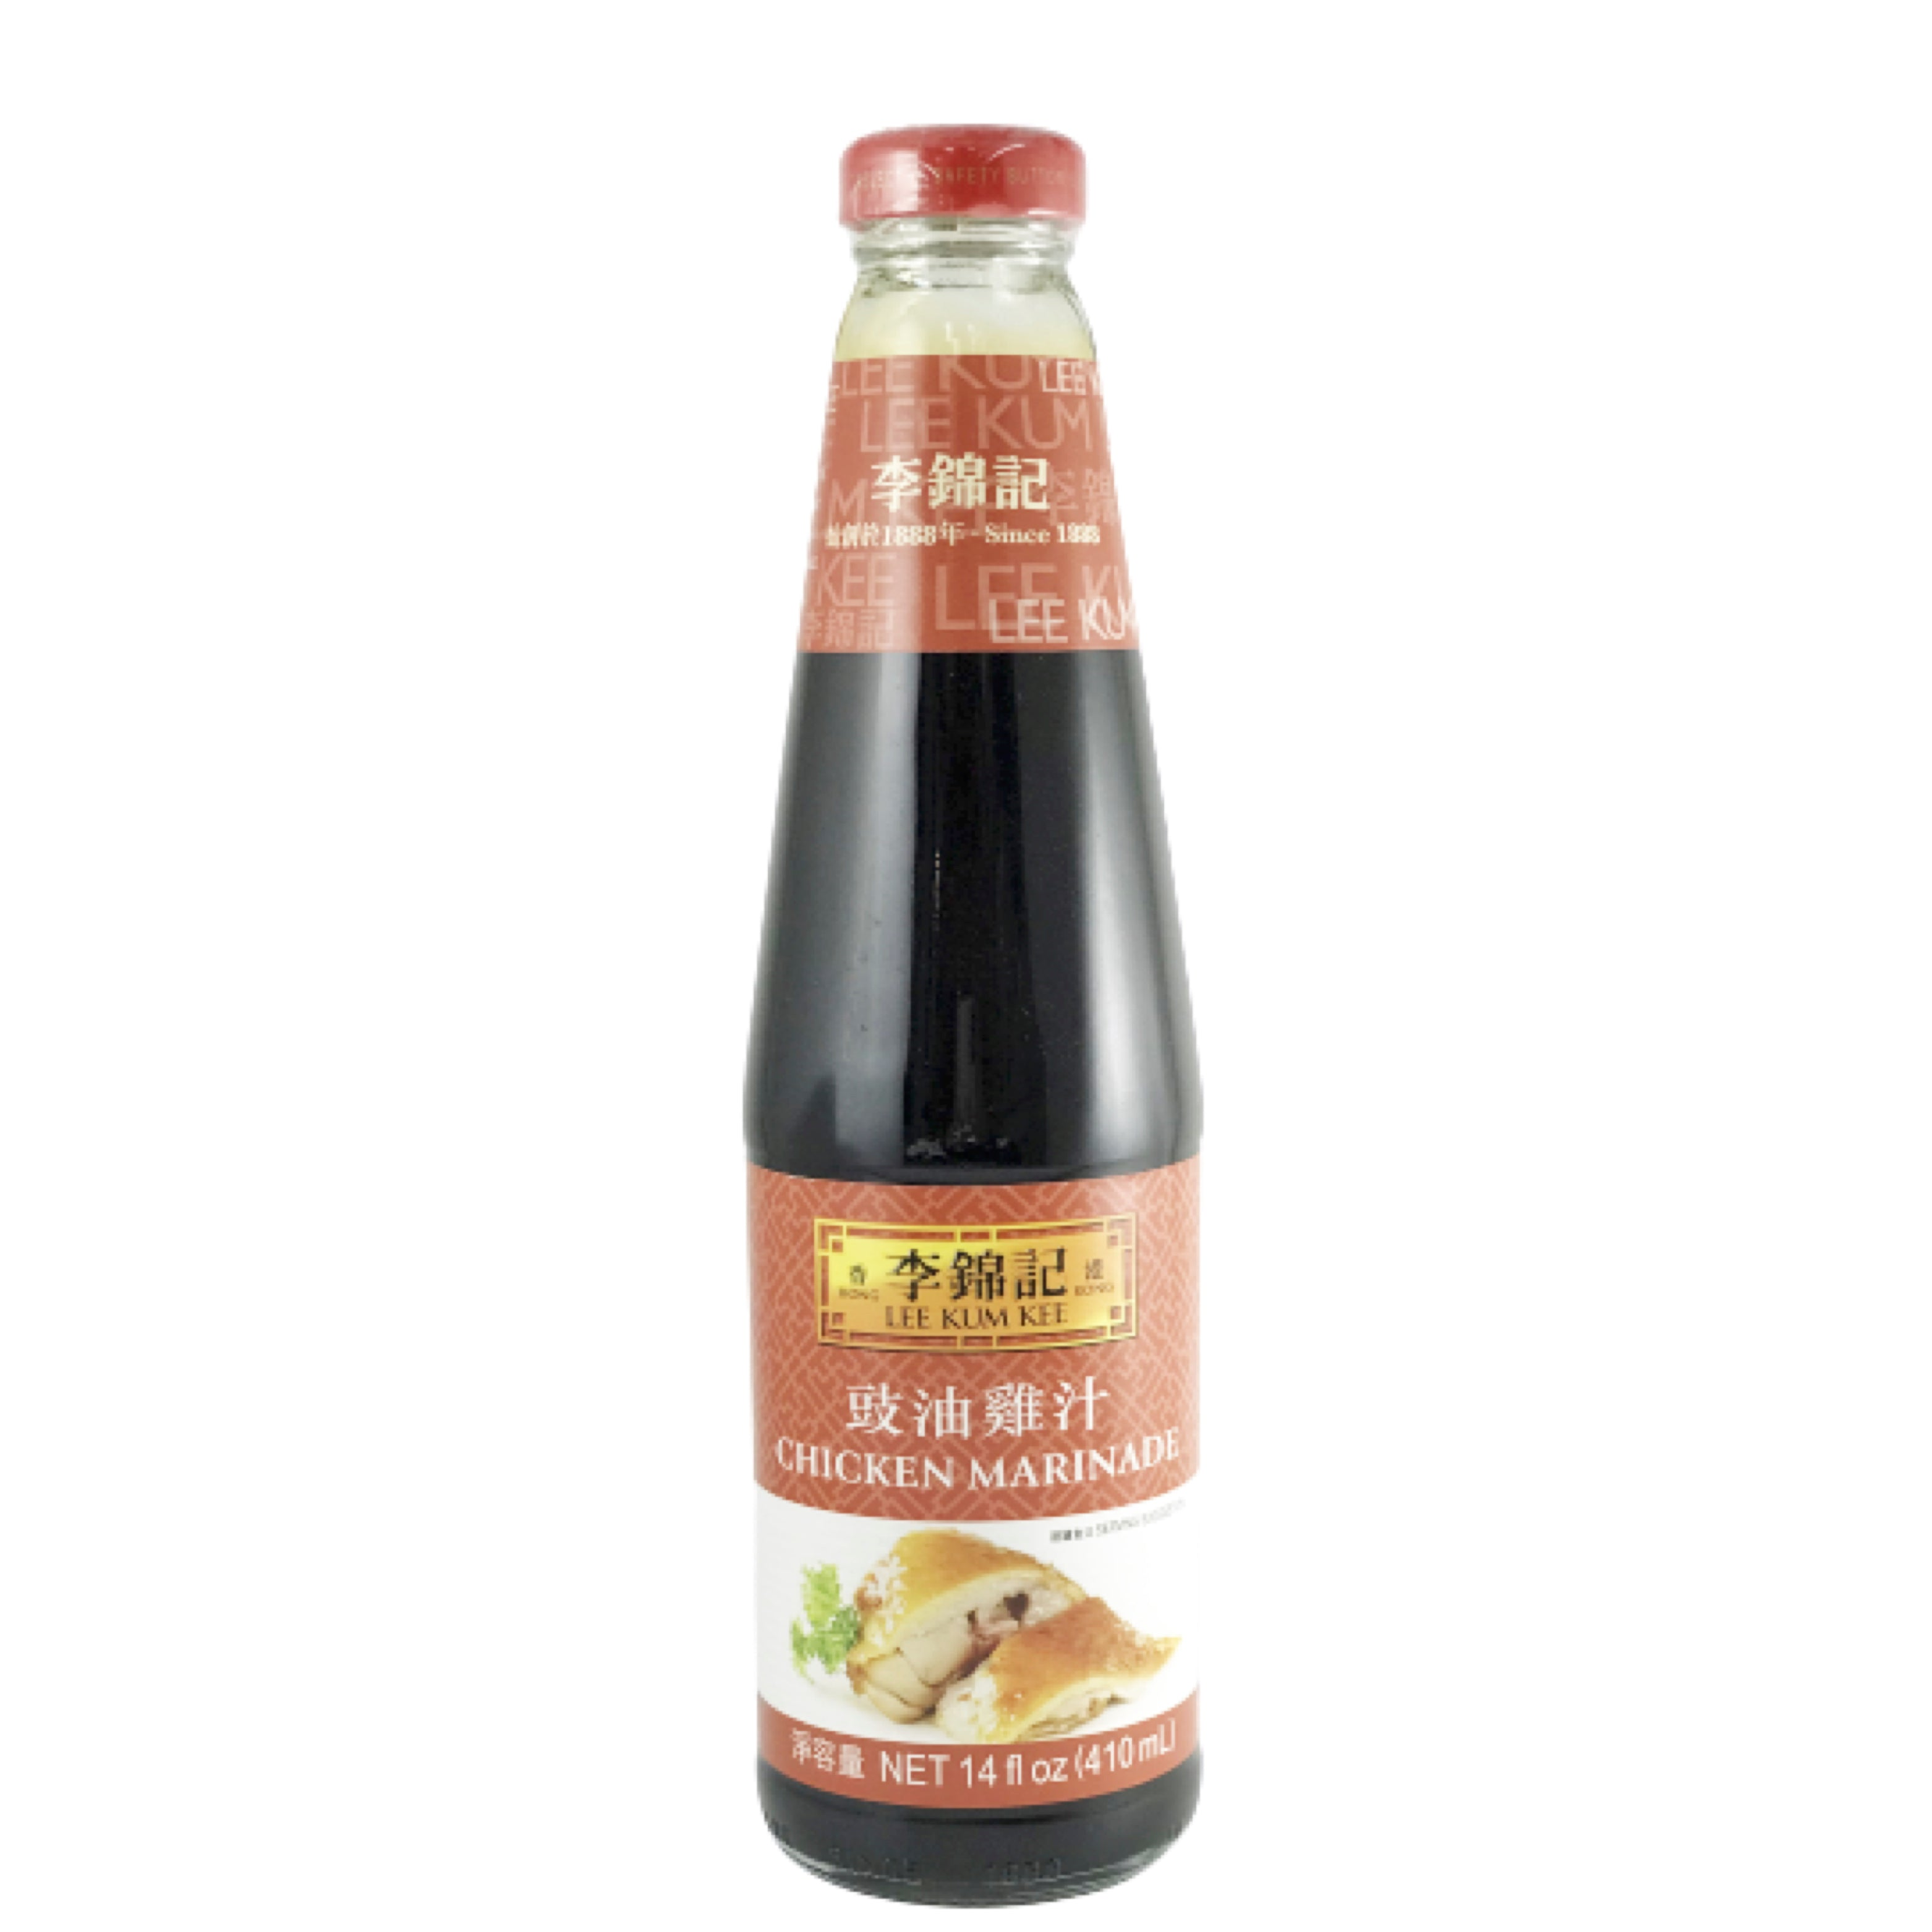 Lee Kum Kee Chicken Marinade 李錦記 䜴油雞汁 14oz